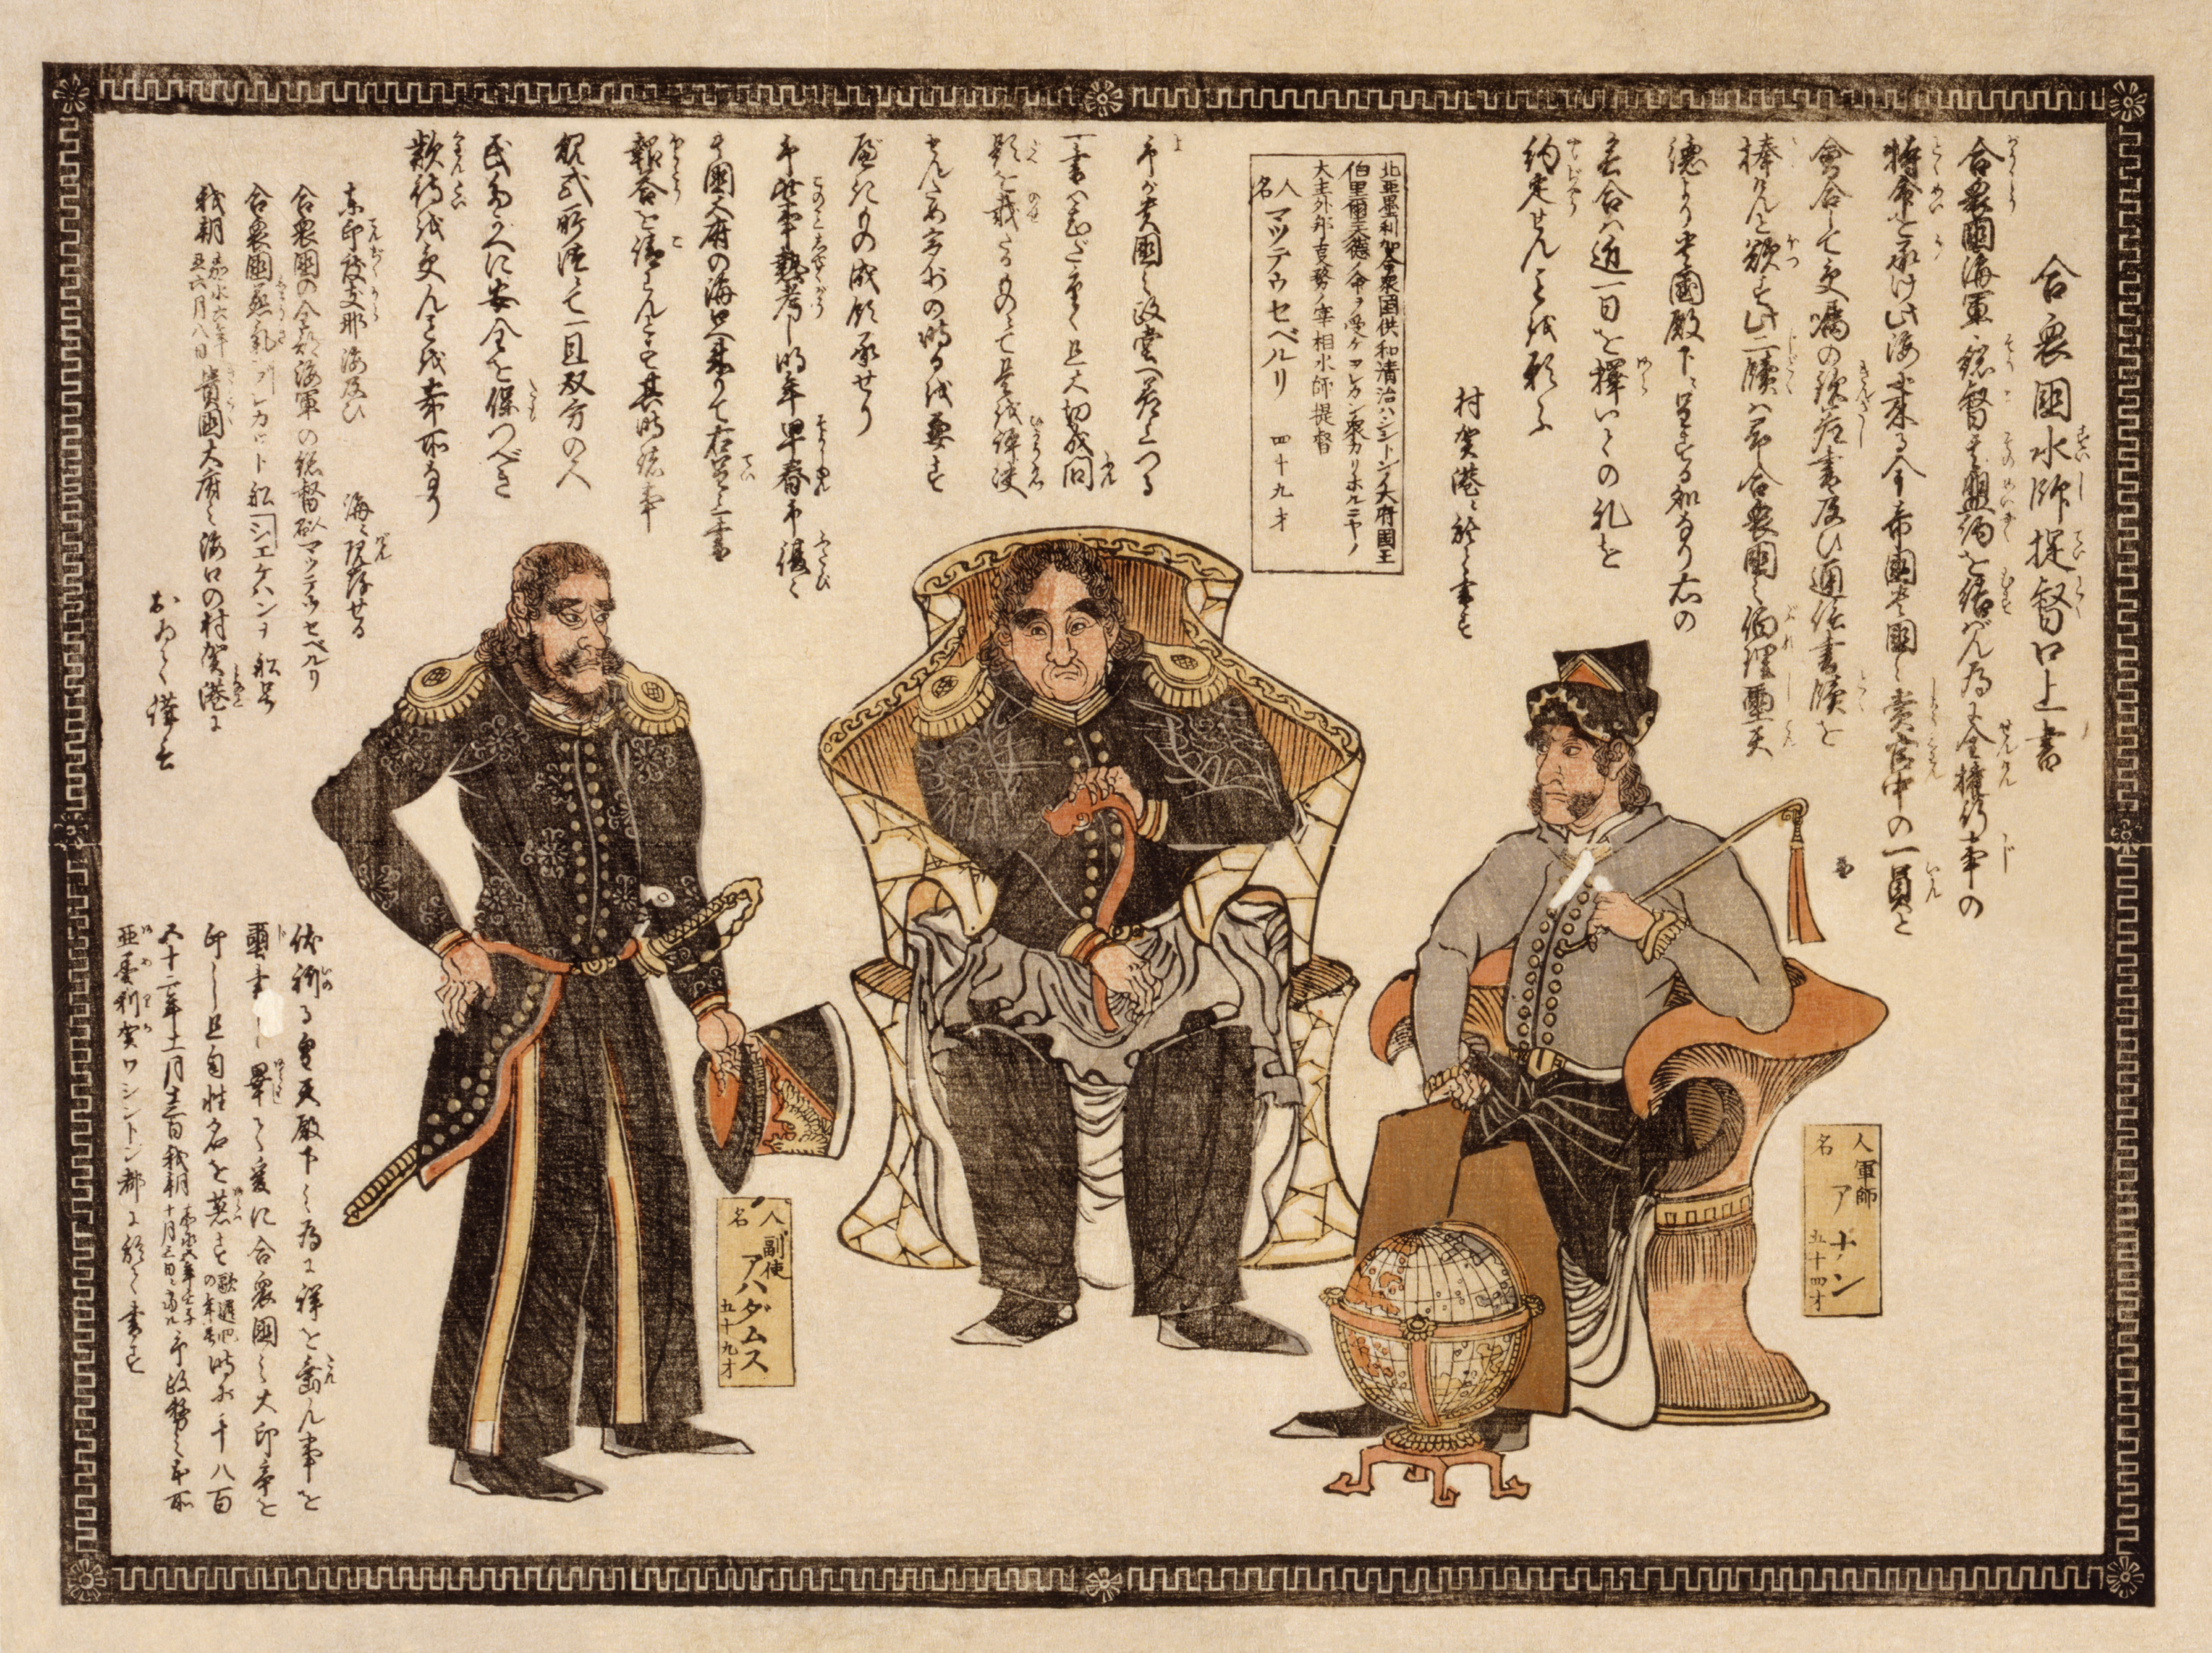 Gasshukoku suishi teitoku kōjōgaki (Oral statement by the American Navy admiral). A Japanese print showing three men, believed to be Commander Anan, age 54; Perry, age 49; and Captain Henry Adams, age 59, who opened up Japan to the West.